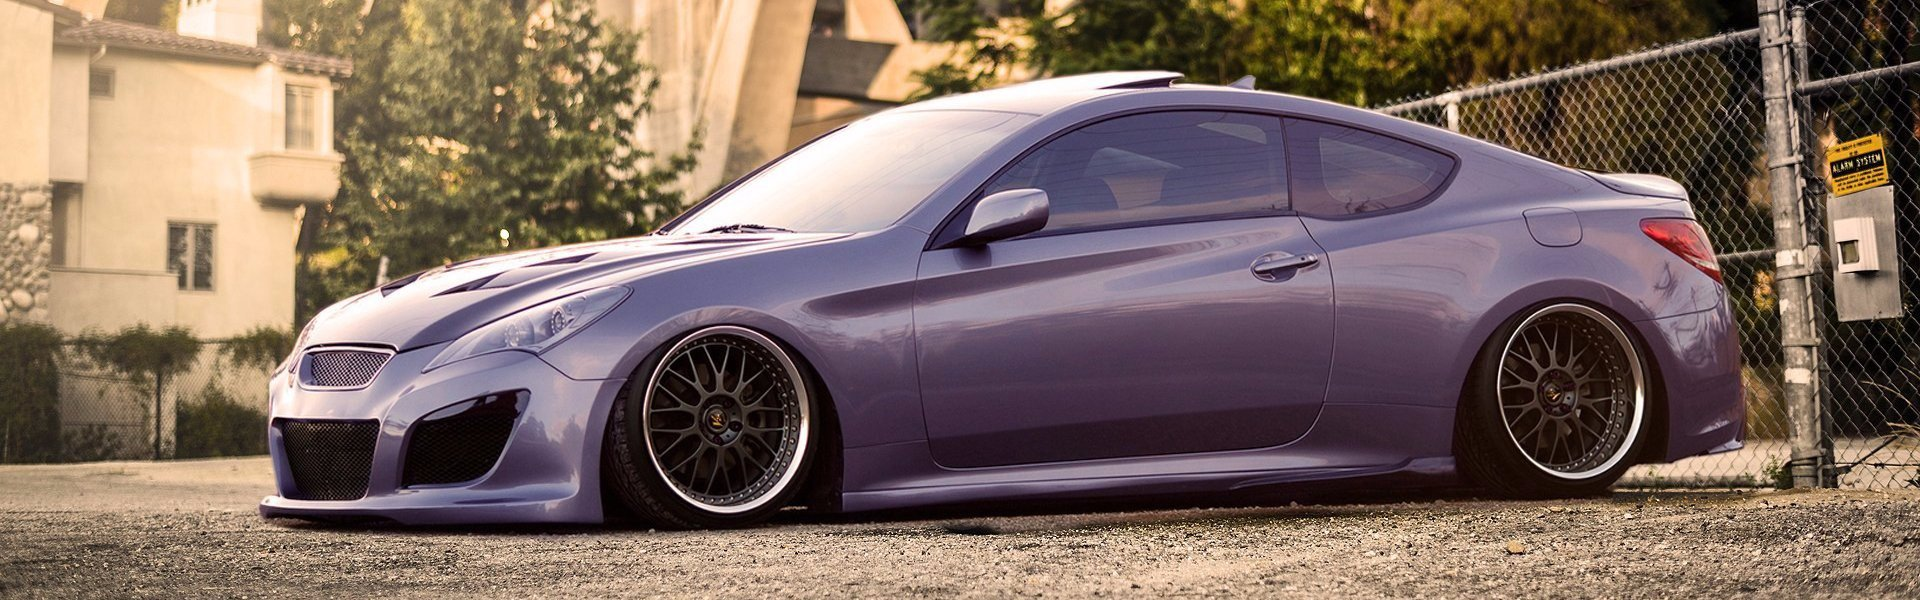 Hyundai Genesis coupe purple stance-тюнинг